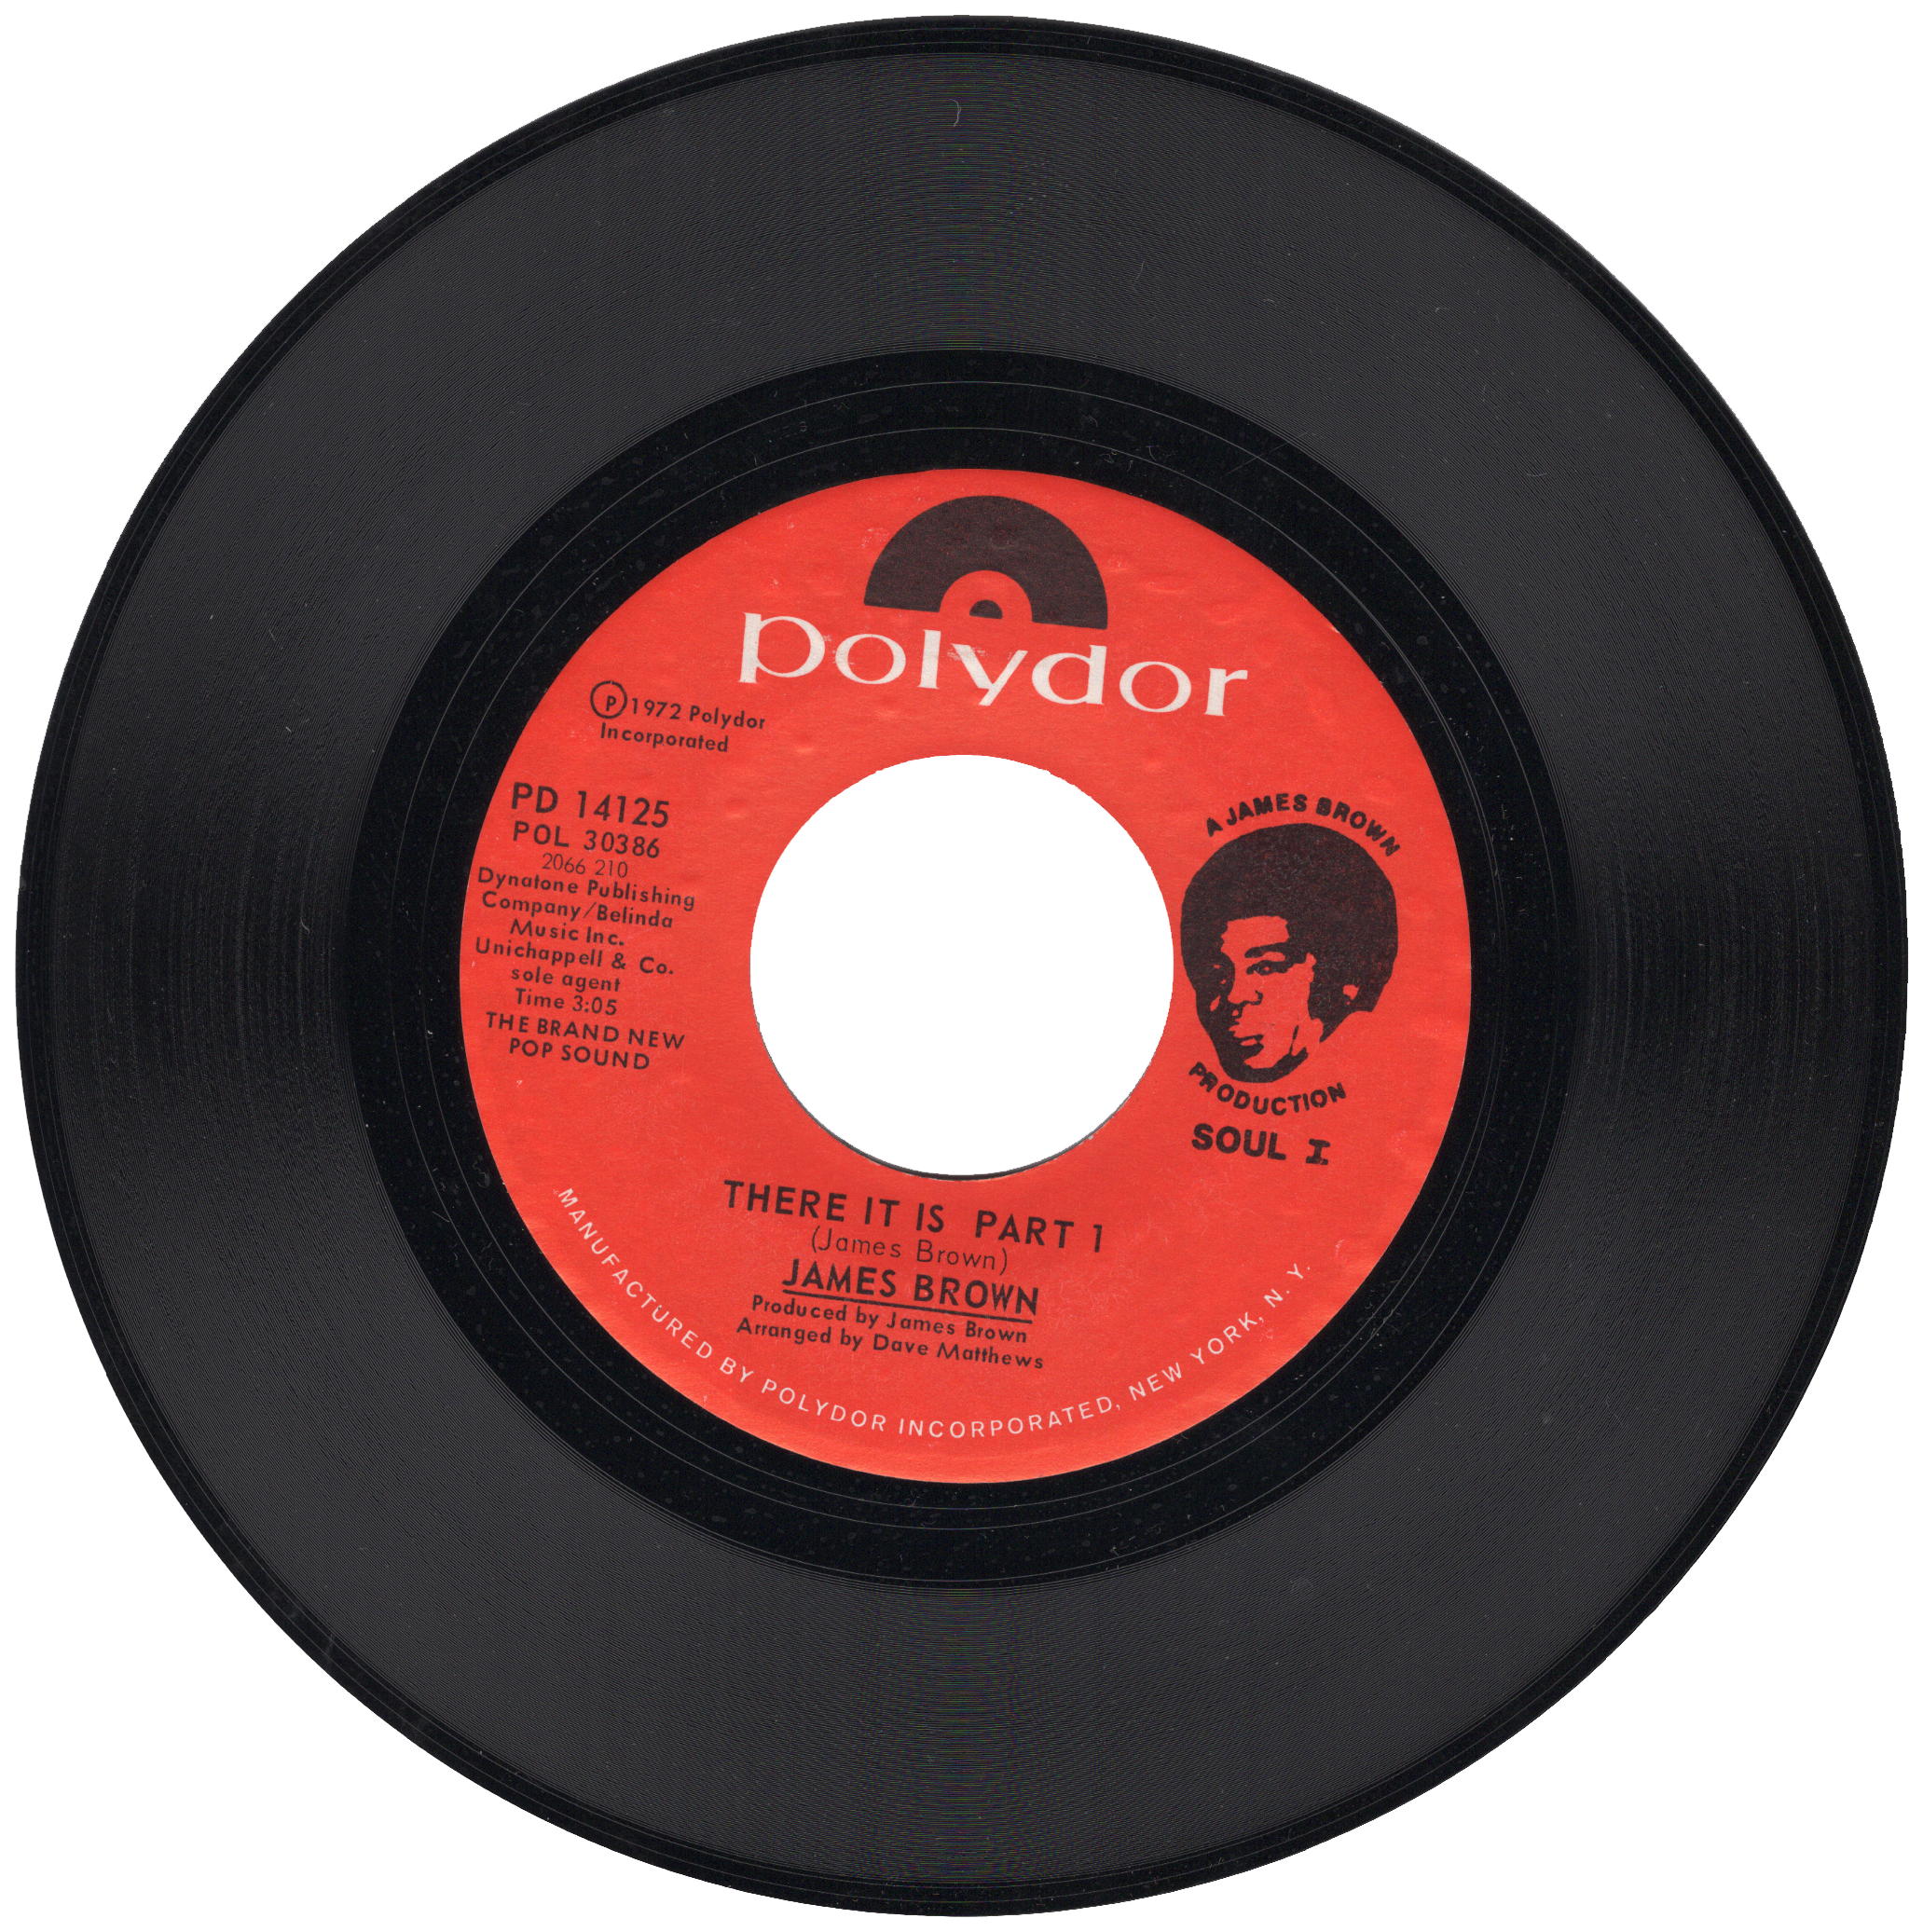 WLWLTDOO-1972-45-JAMES_BROWN-THERE_IT_IS-PT_1-PD14125.png